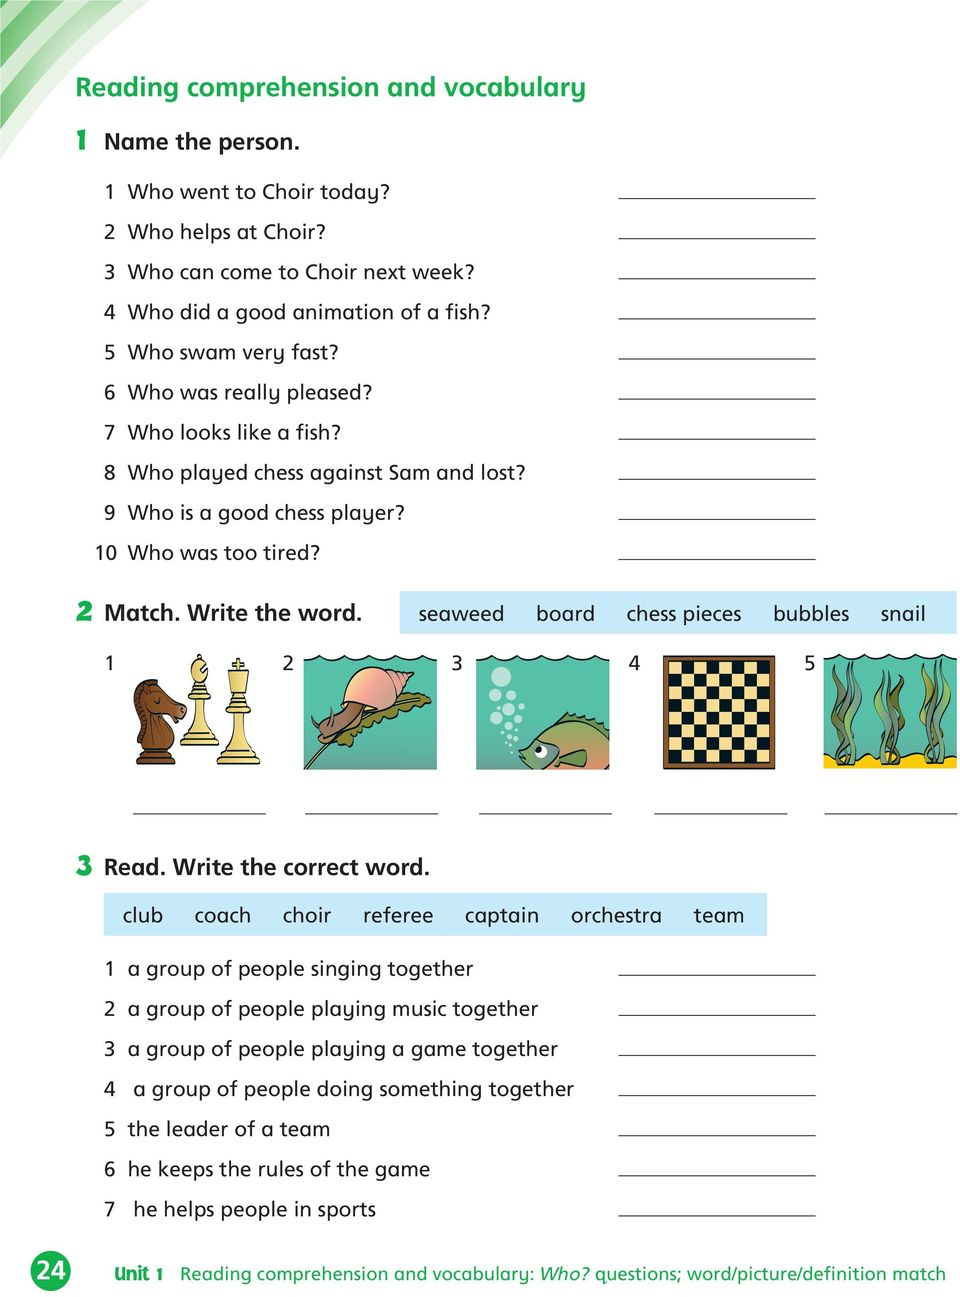 seaweed board chess pieces bubbles snail 4 5 Read. Write the correct word.